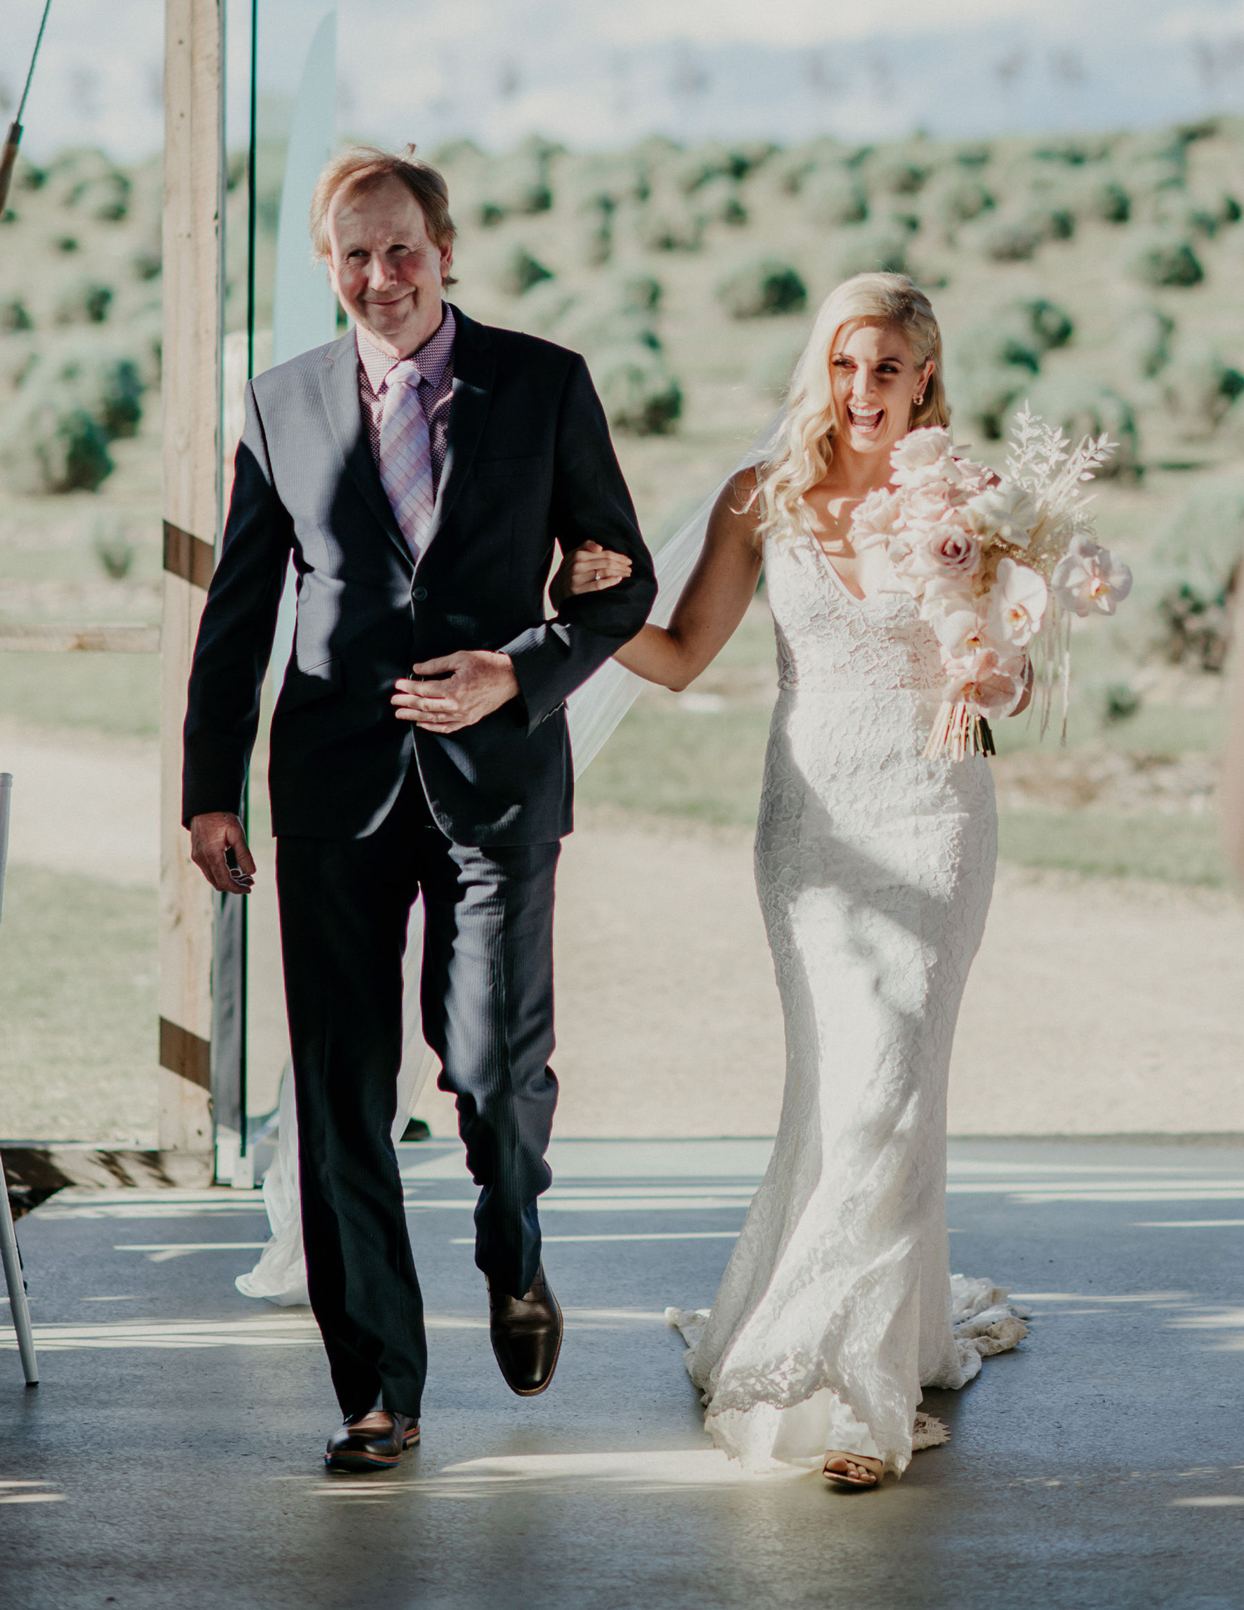 bride smiles as father walks her down the aisle